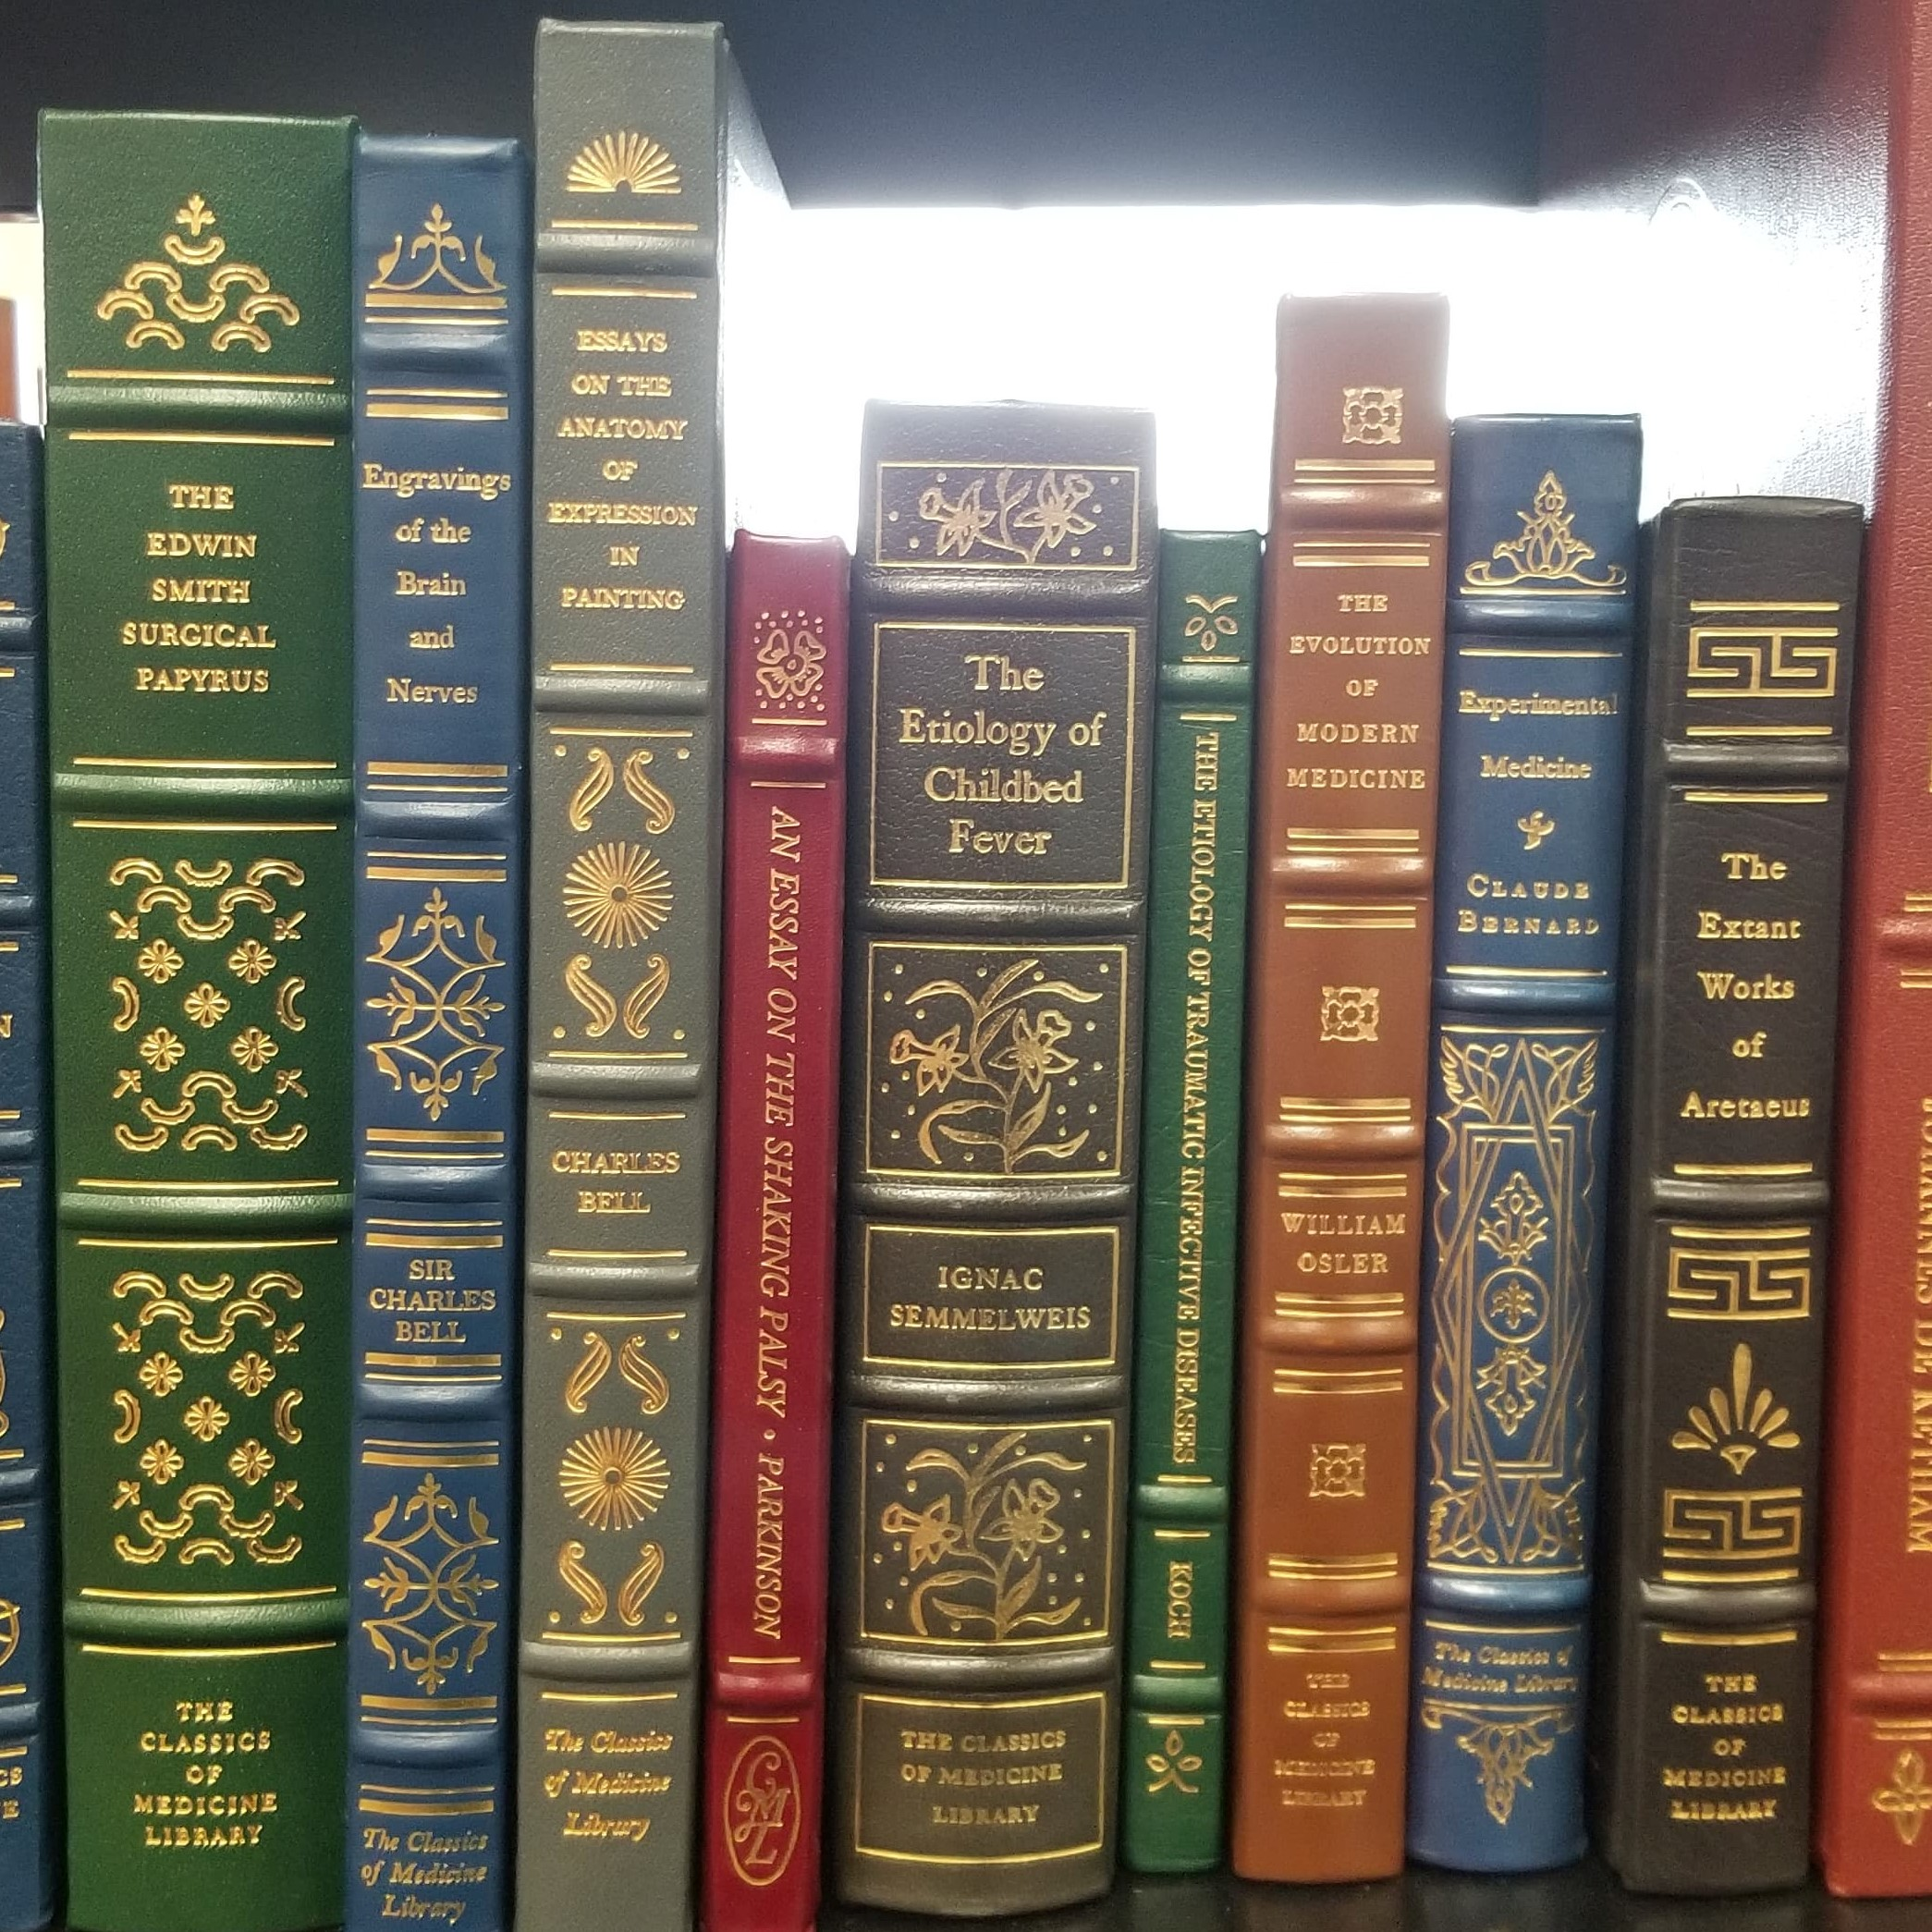 Row of colorful books from the Classics of Medicine Library.